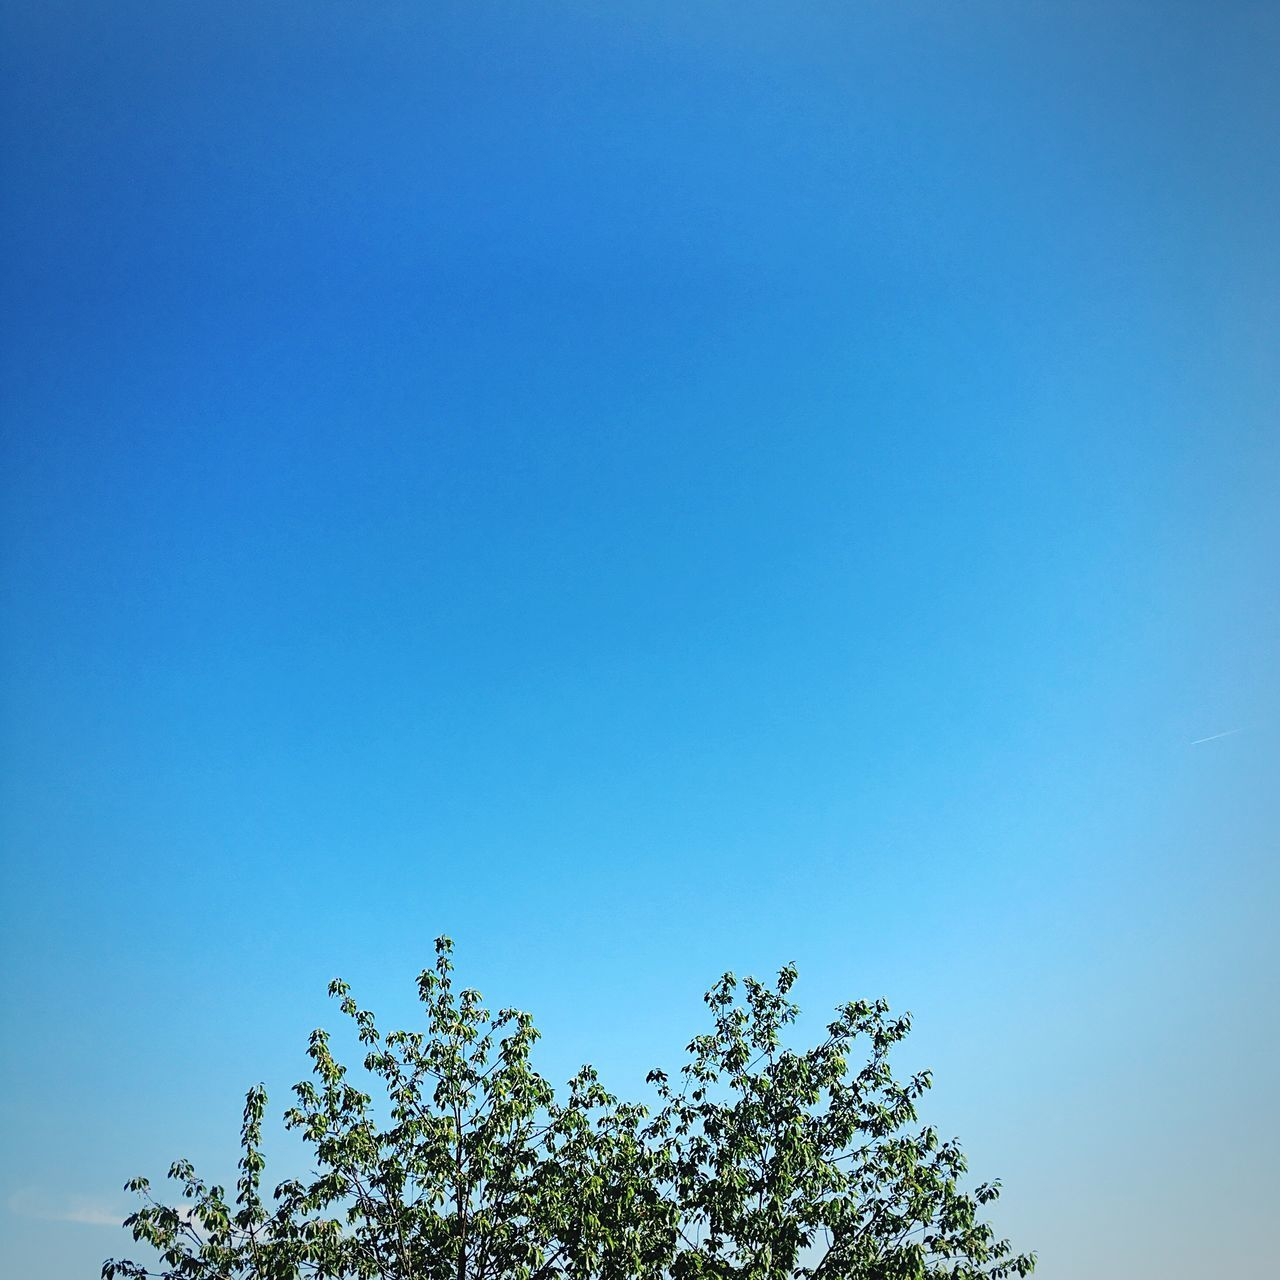 Blue Tree Low Angle View Clear Sky Copy Space Nature Growth Beauty In Nature Day No People Outdoors Tranquility Branch Sky Minimal Minimal Nature